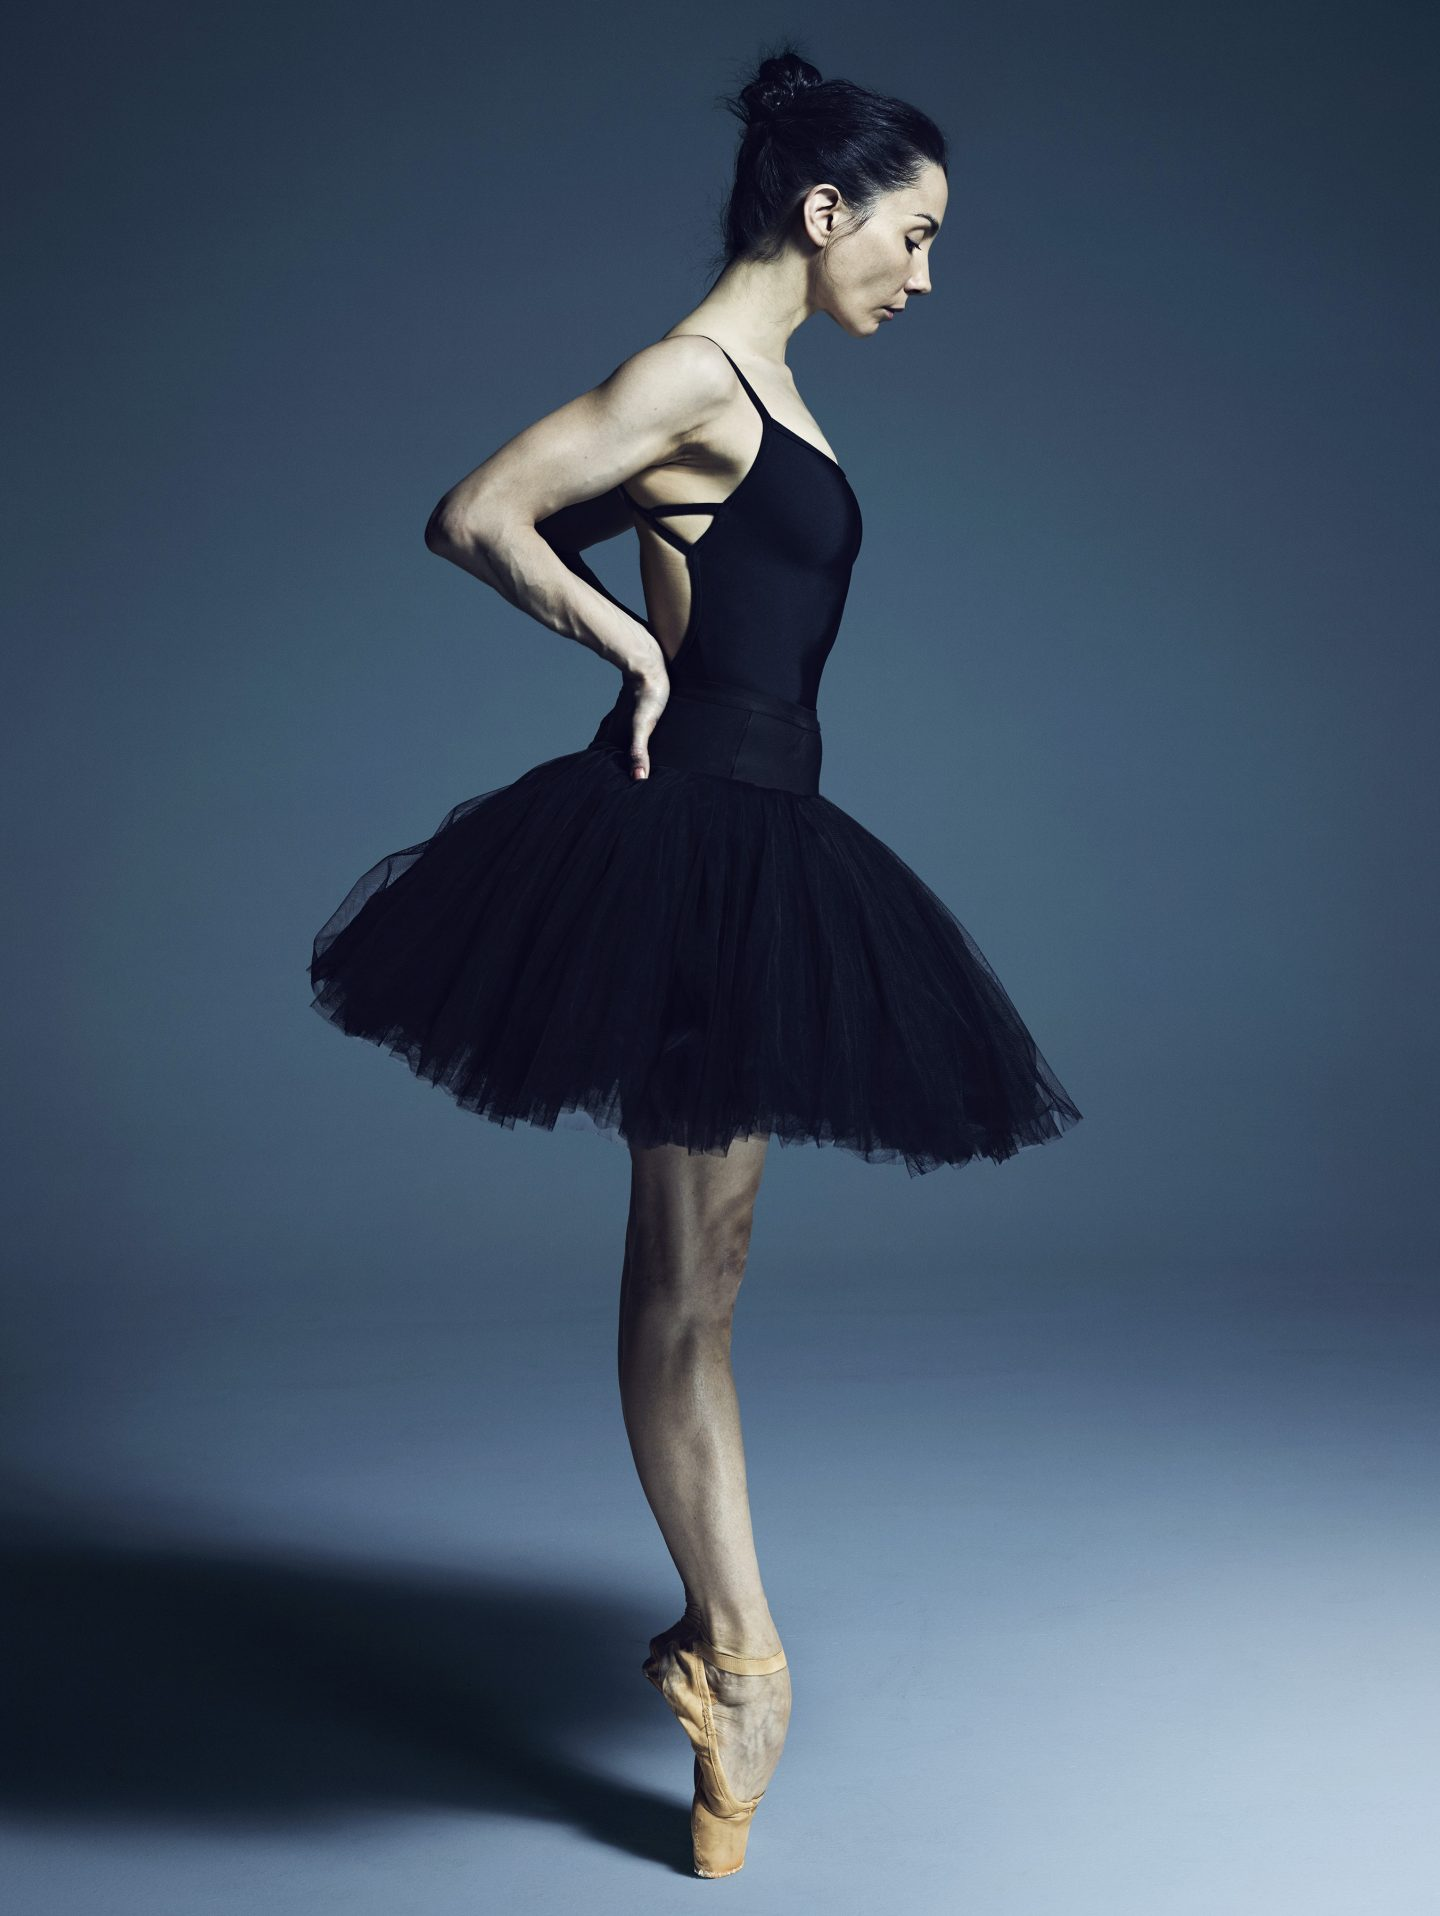 Tamara Rojo, Artistic Director and Lead Principal Dancer of English National Ballet. Portrait by Rick Guest.